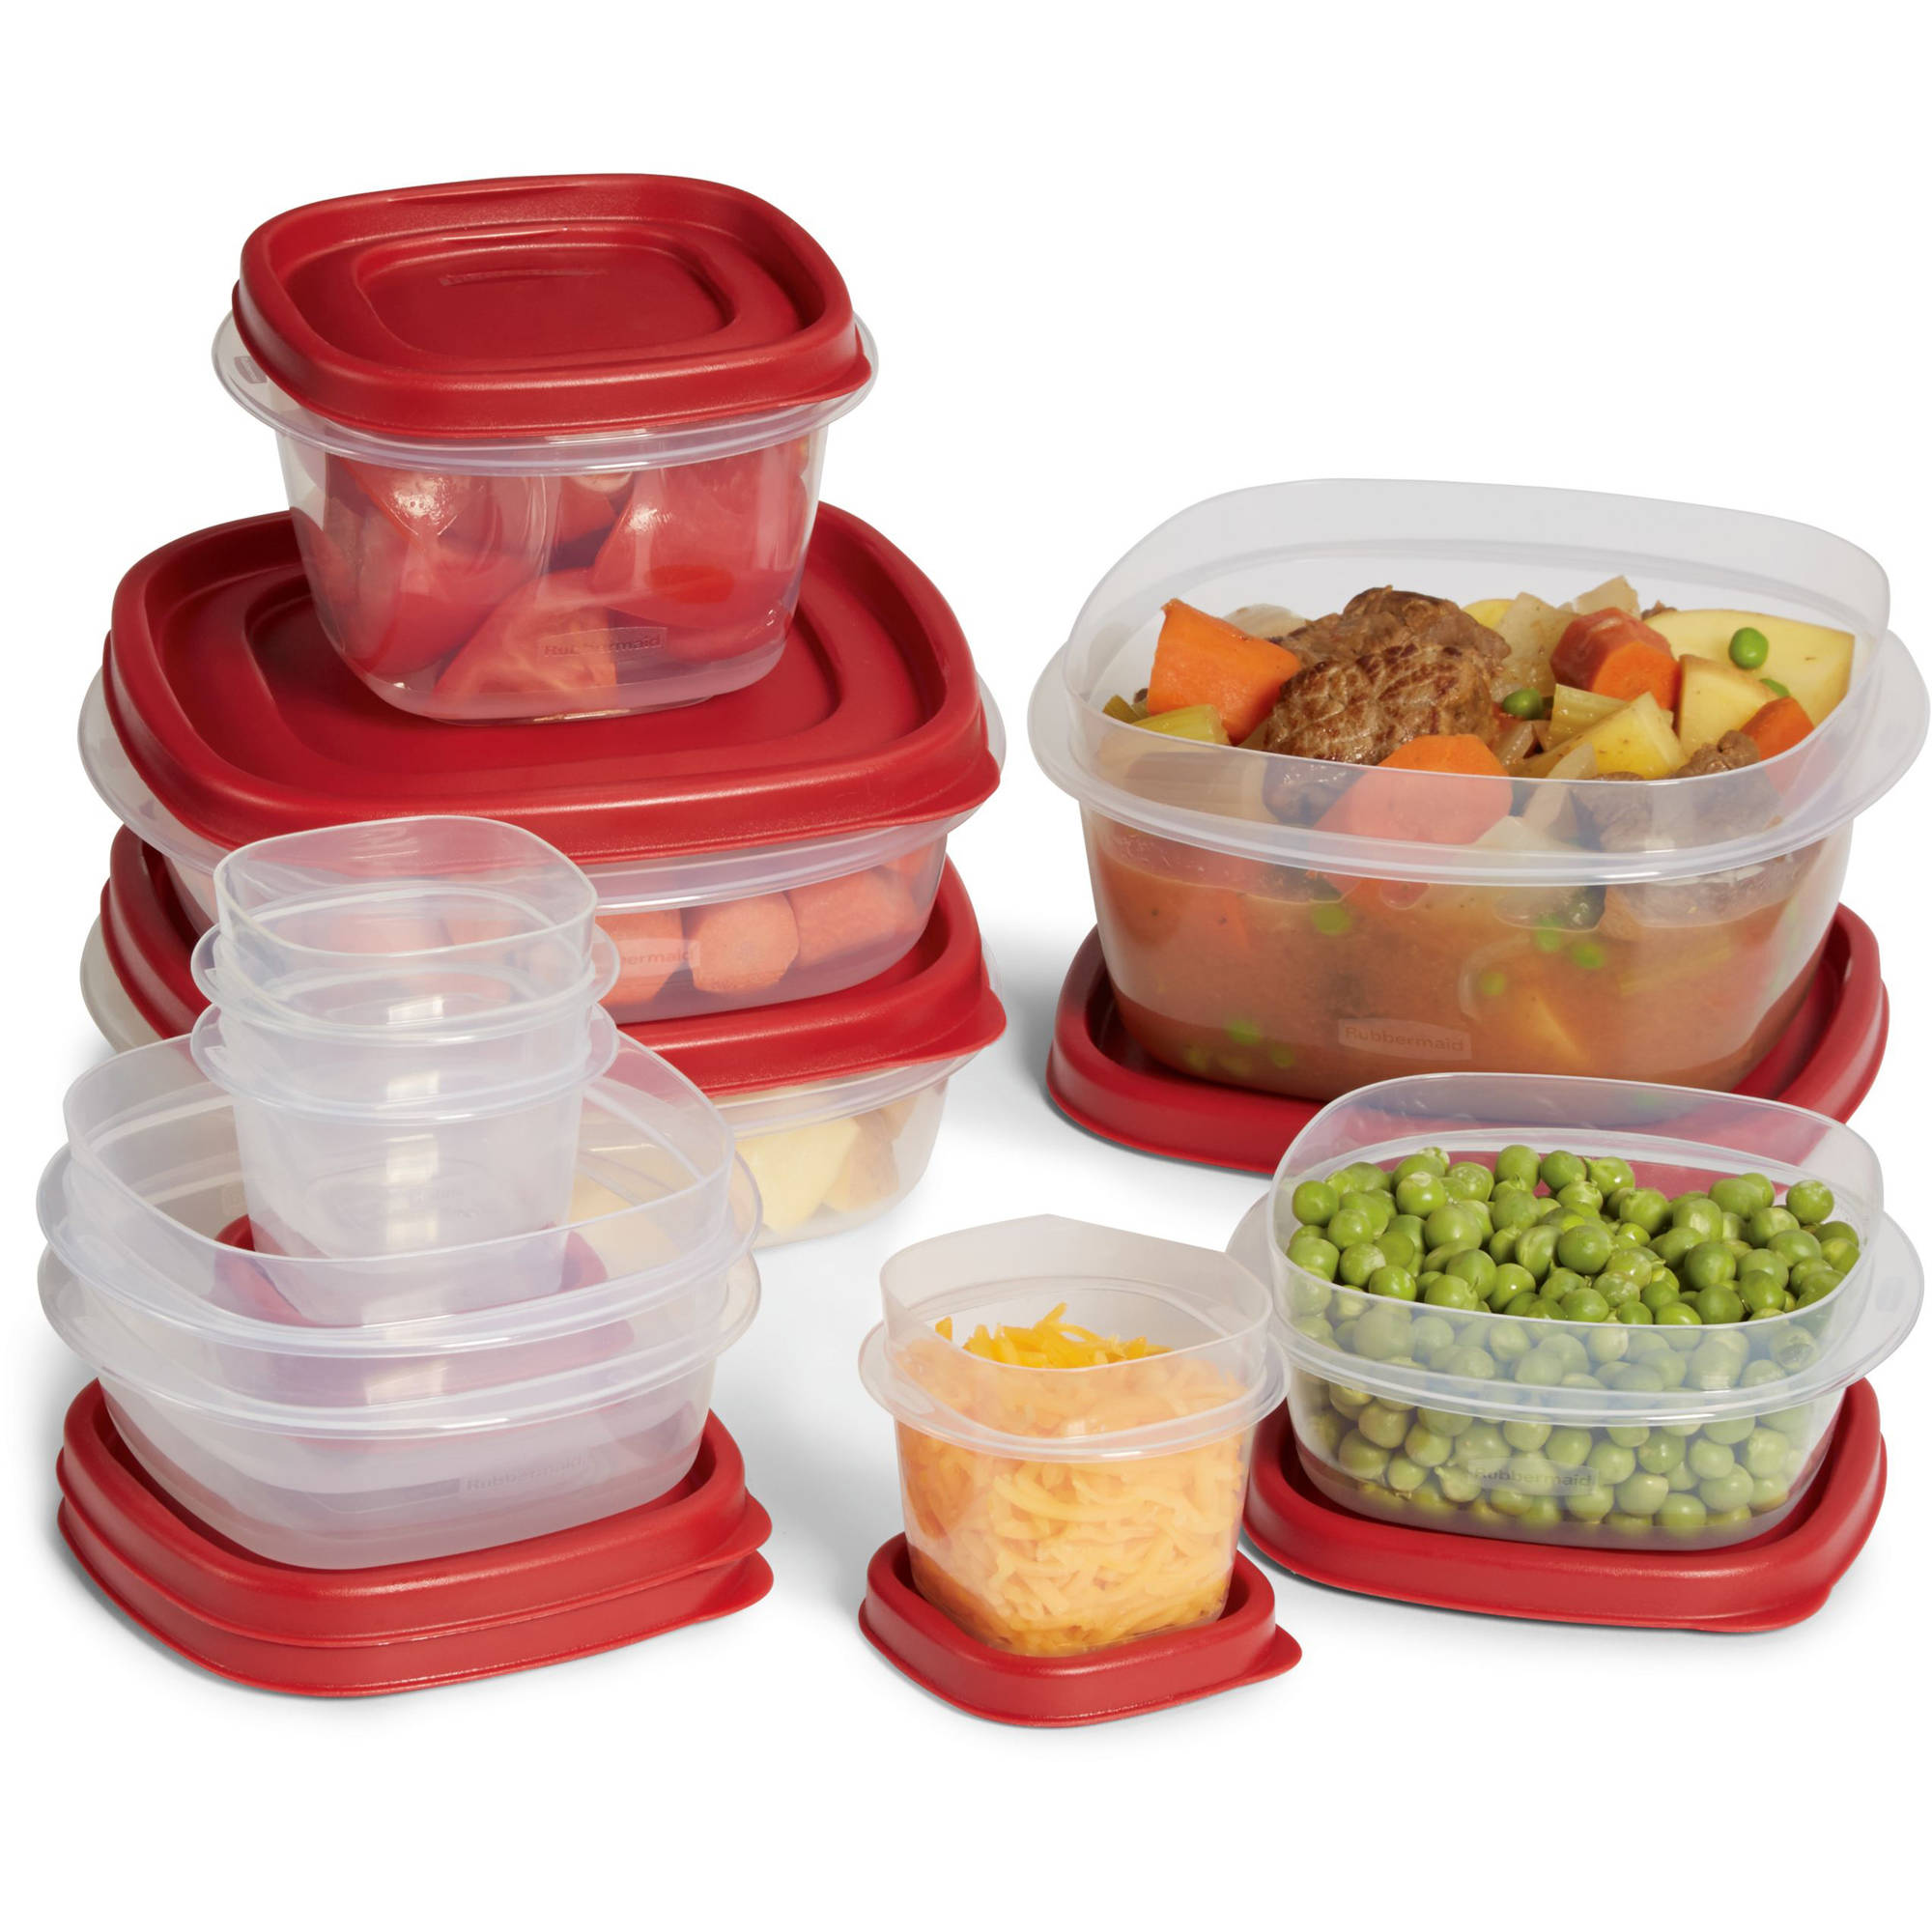 rubbermaid easy find lids food storage container set, 20-piece